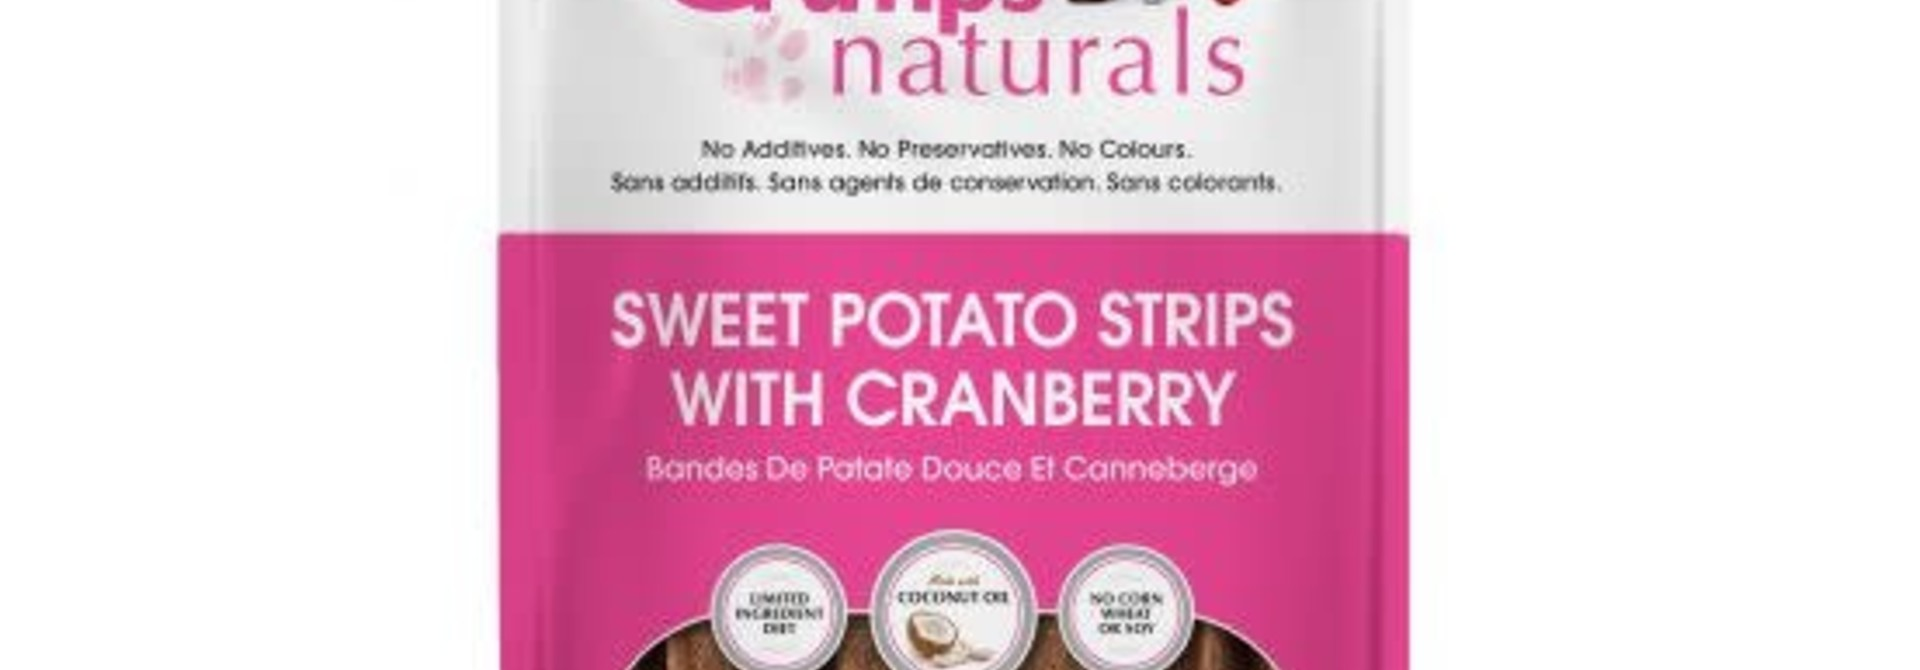 Crumps Sweet Potato Strips Cranberry 5.6oz